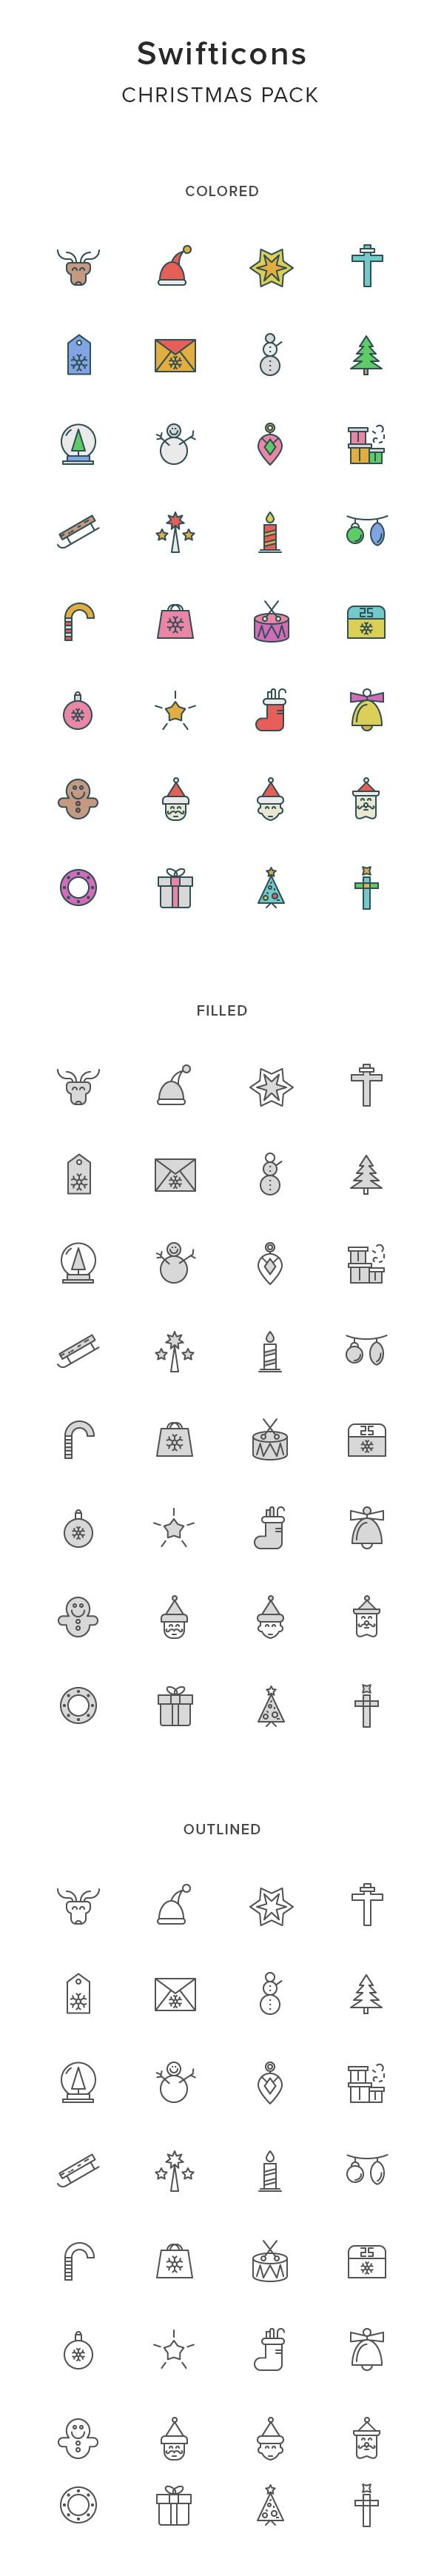 Swifticons: 32×3 Christmas Icons